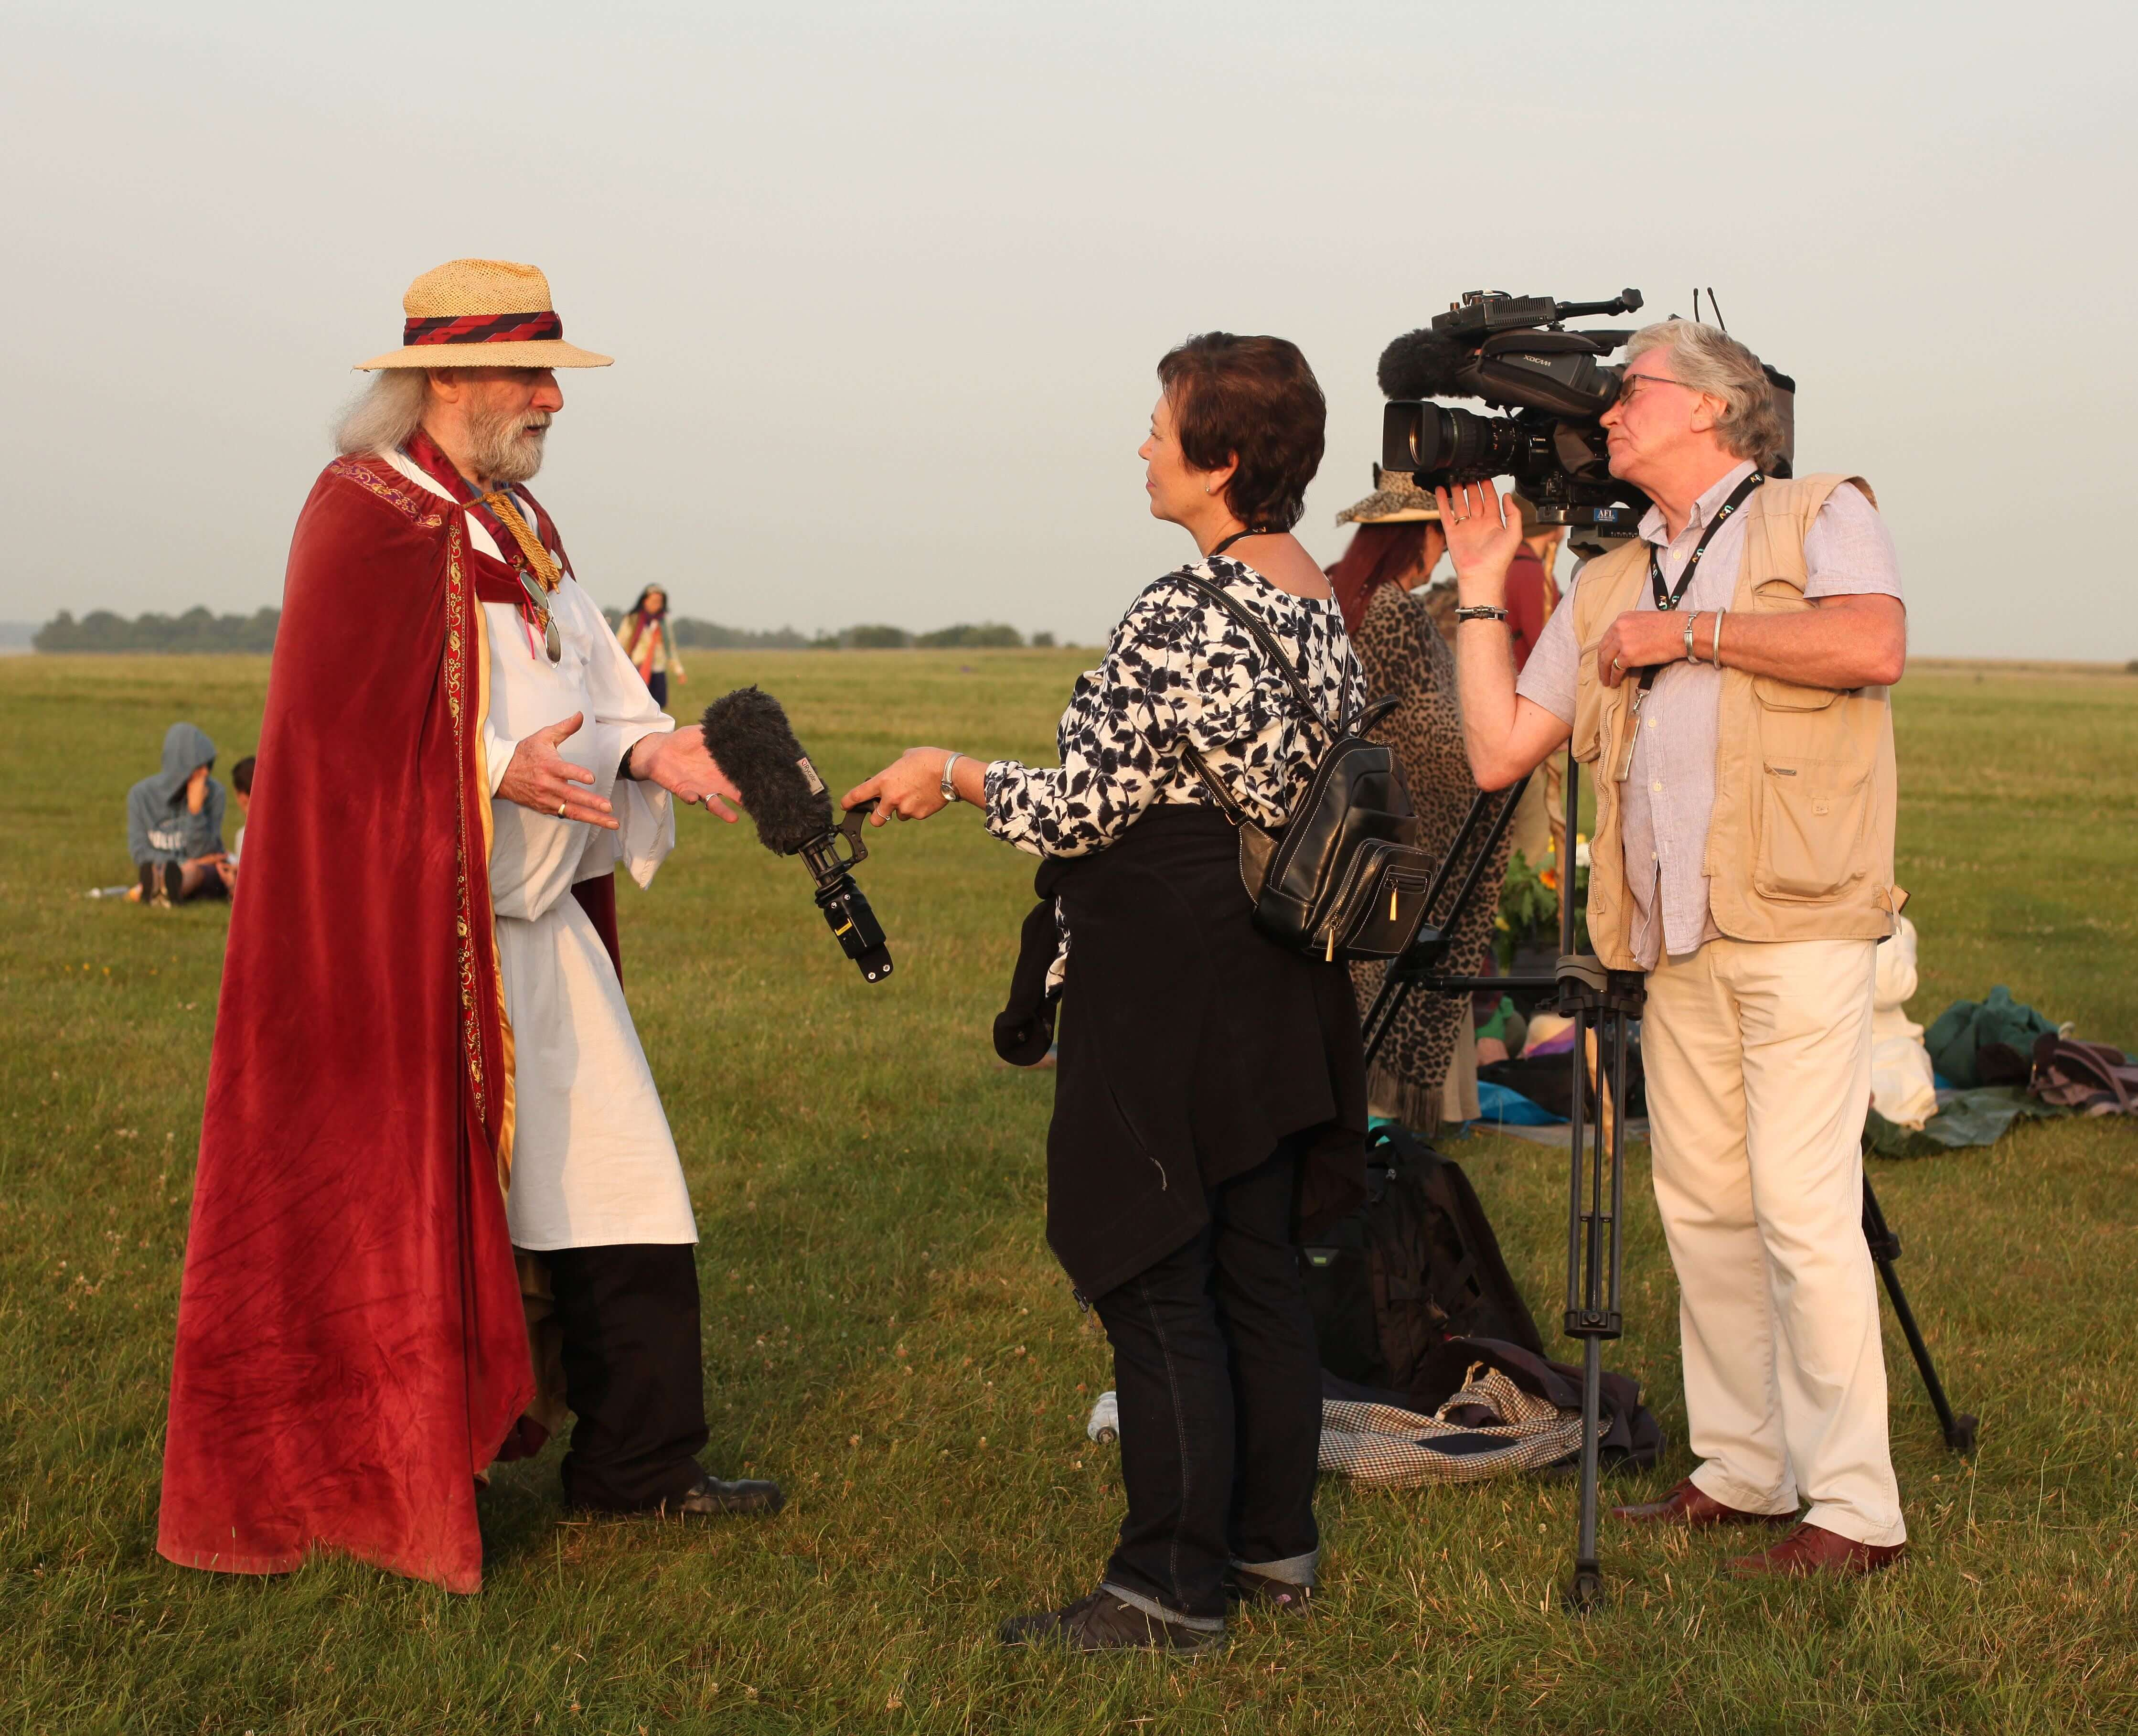 ana paganini stonehenge Summer and Winter Solstices the south west collective of photography reporters interviewing man